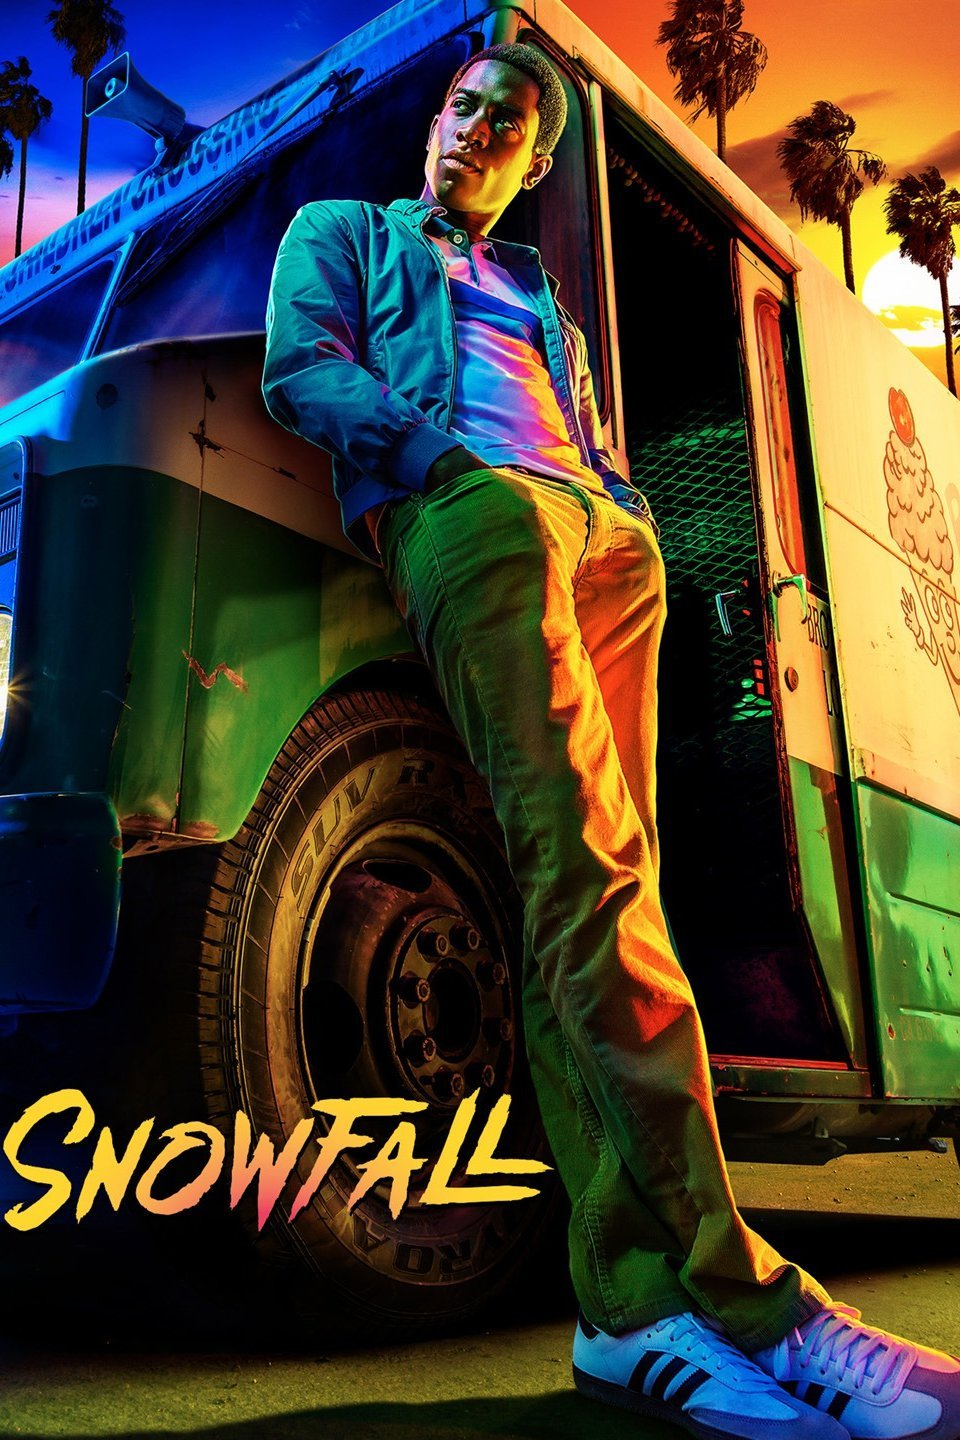 Snowfall Season 2 - As business is growing for Franklin, he struggles to keep up with the increase in demand. Things get a bit trickier when he mixes with Lucia. This is available on BBC Iplayer.